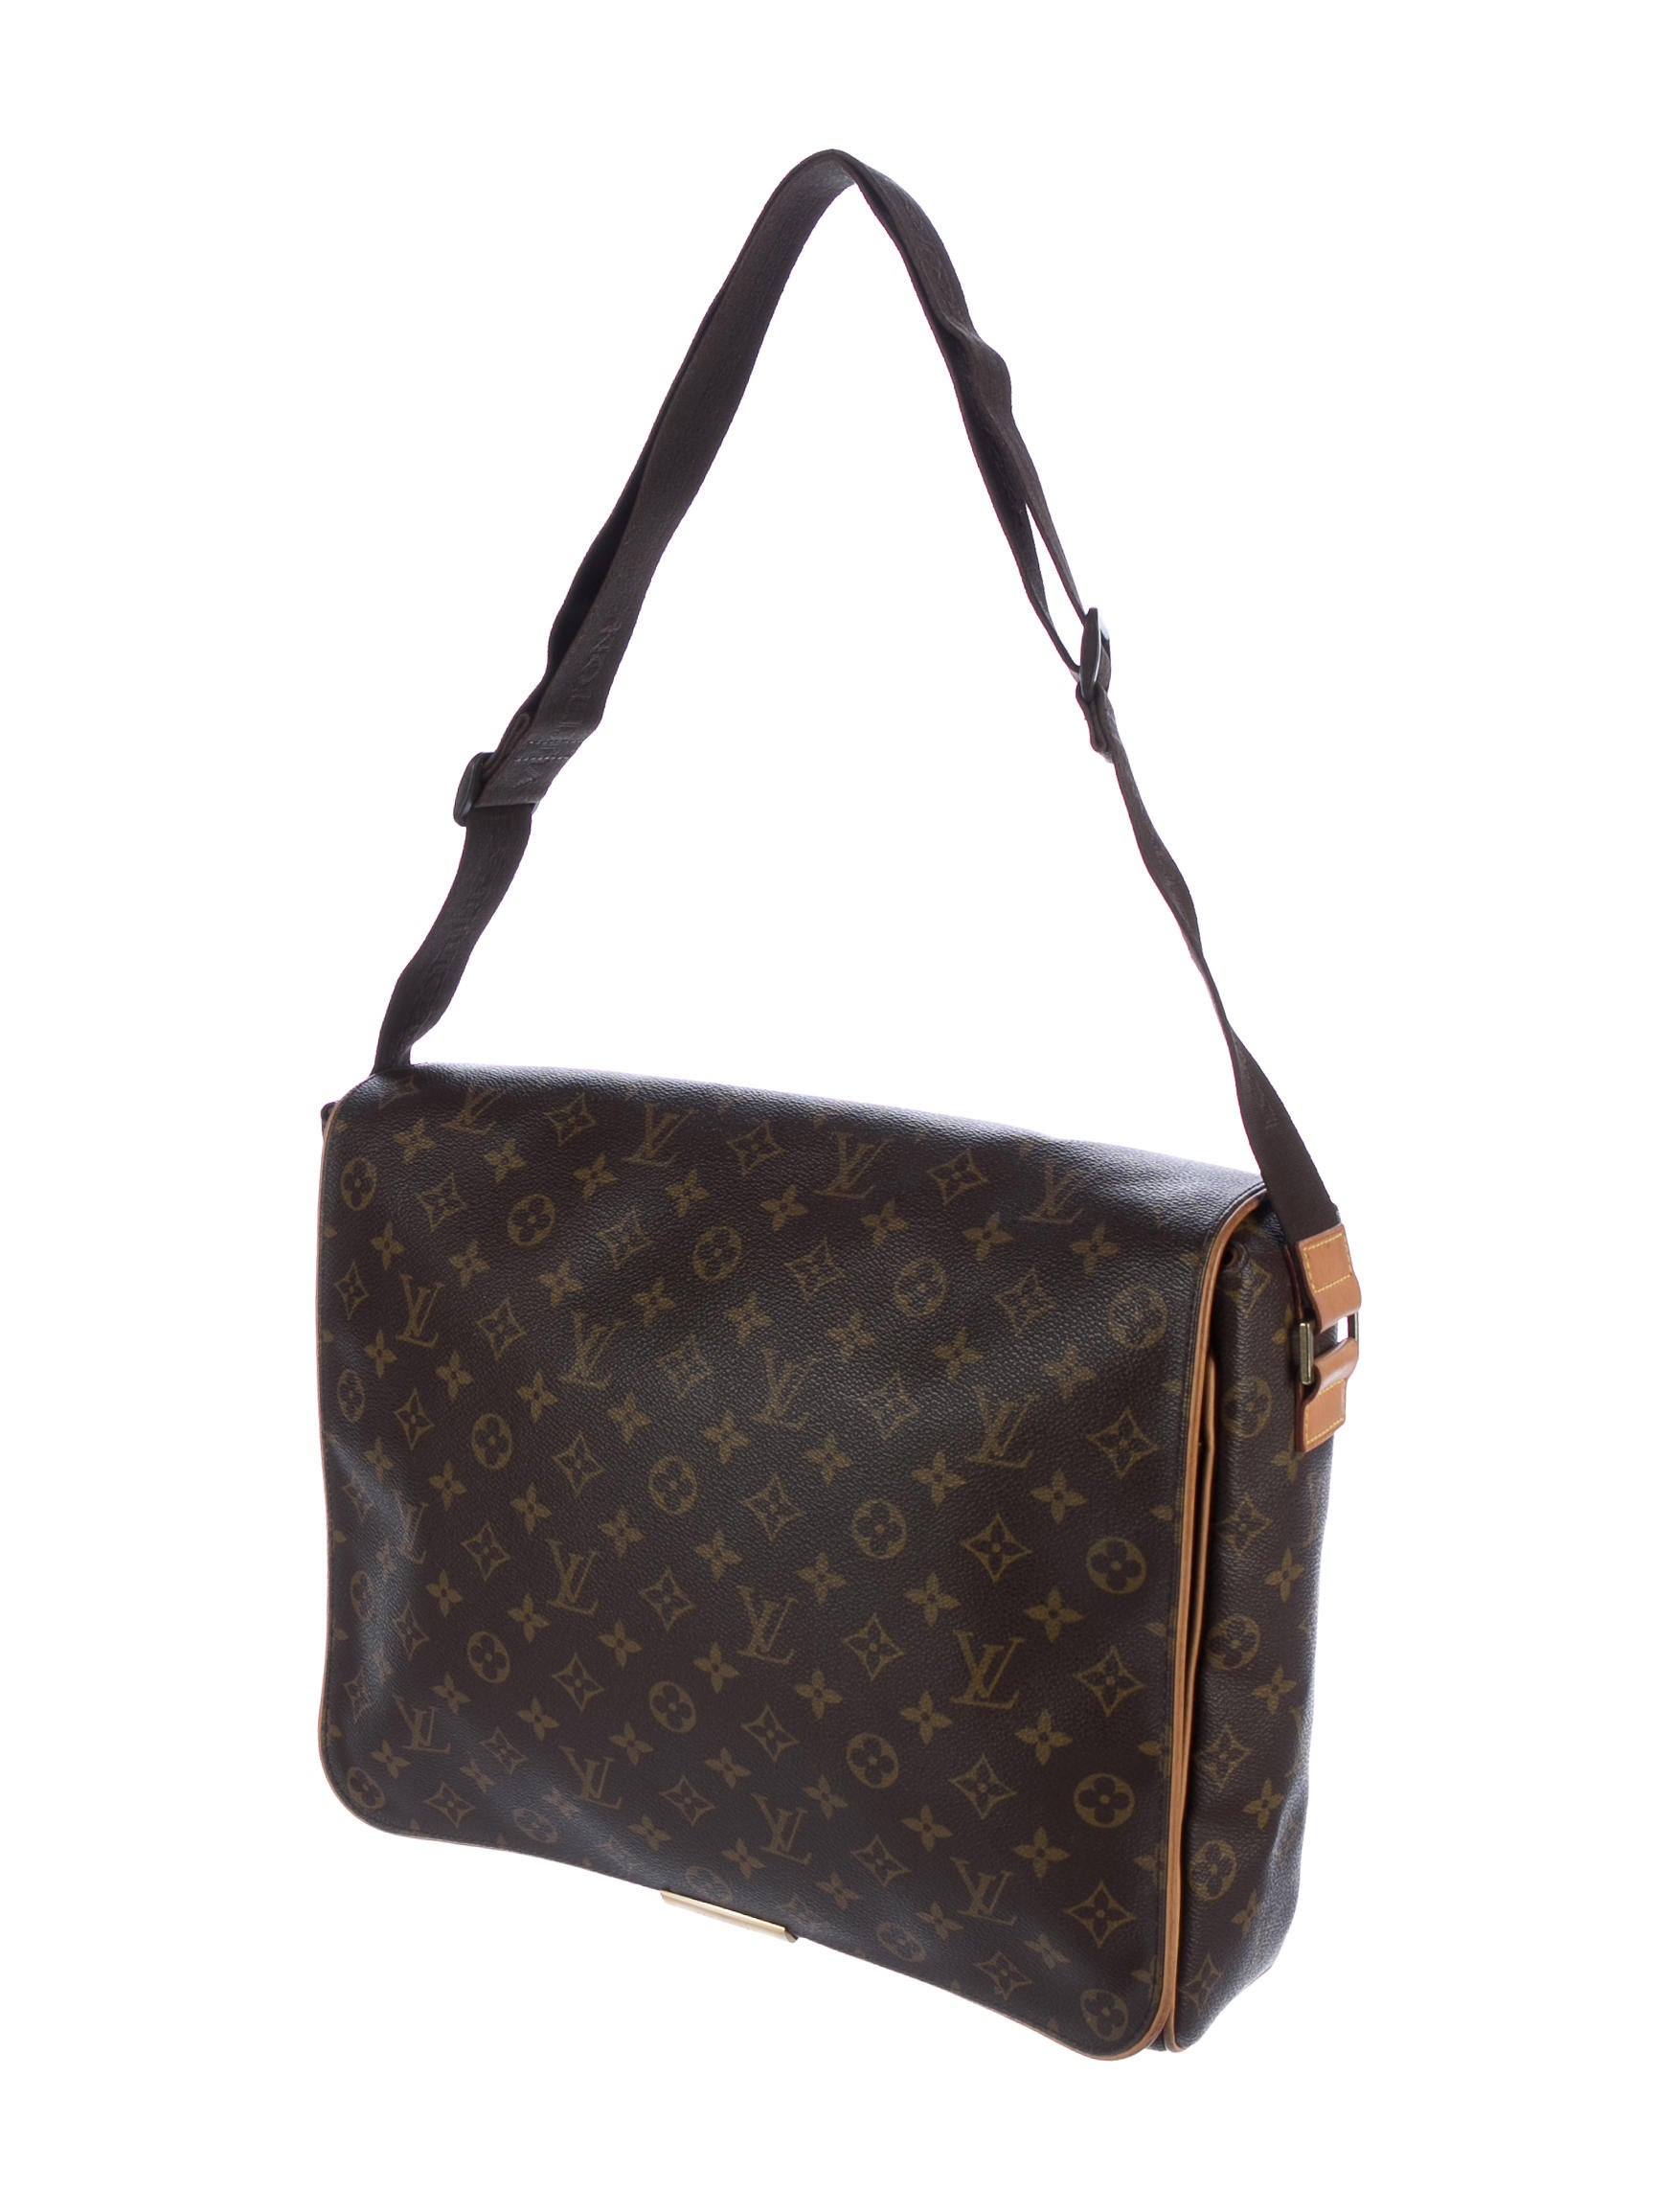 Louis vuitton valmy messenger mm bag bags lou136210 for Louis vuitton miroir bags